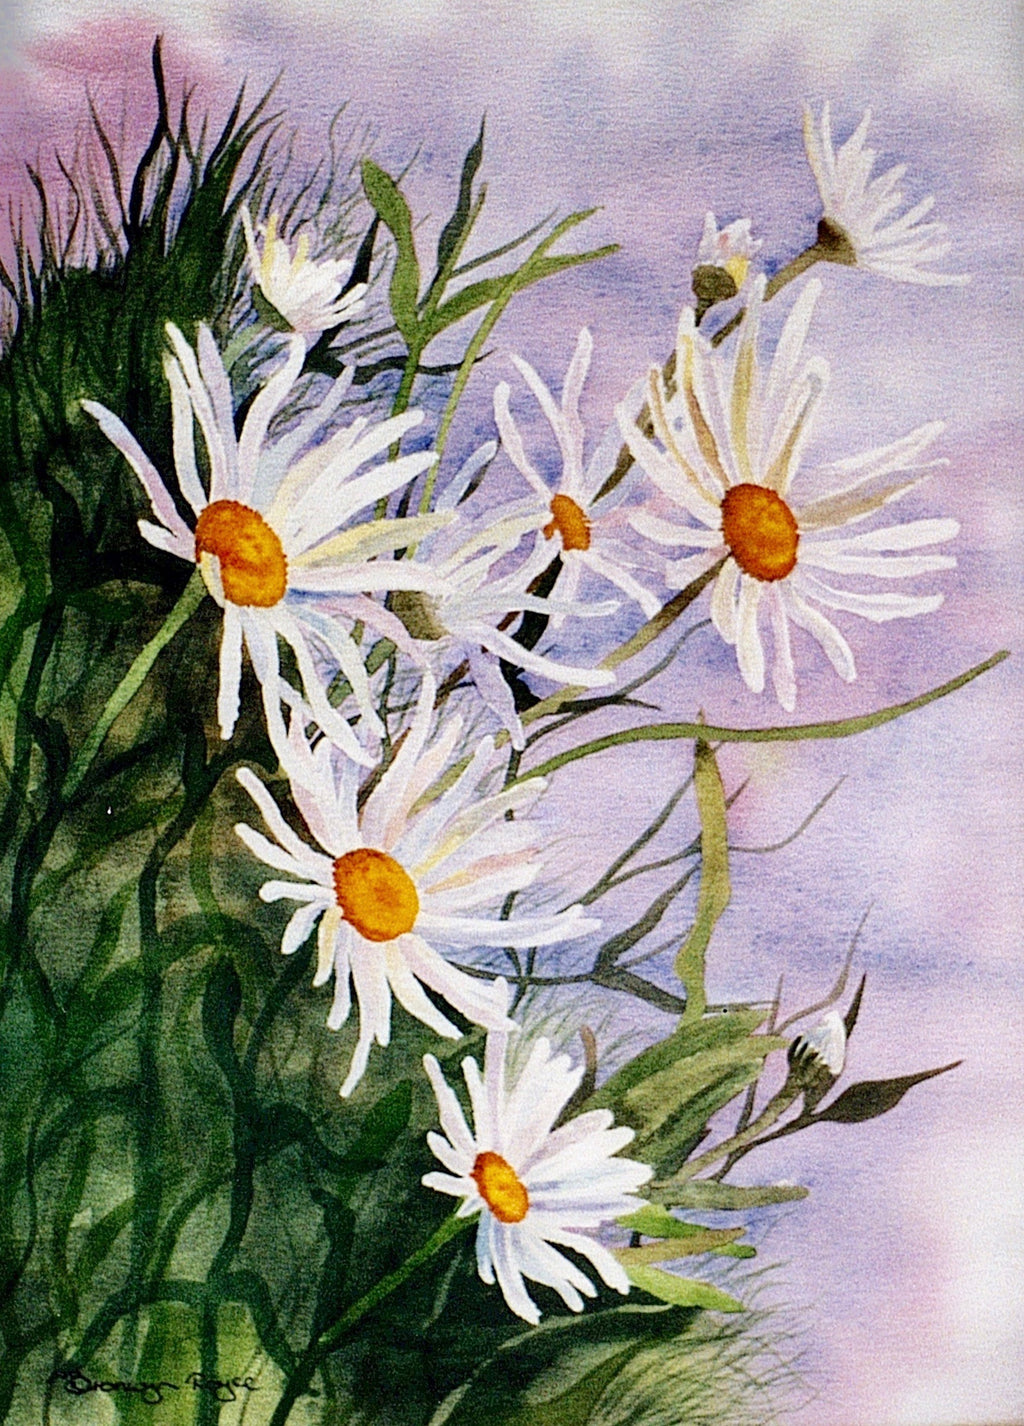 Daisies wild and free